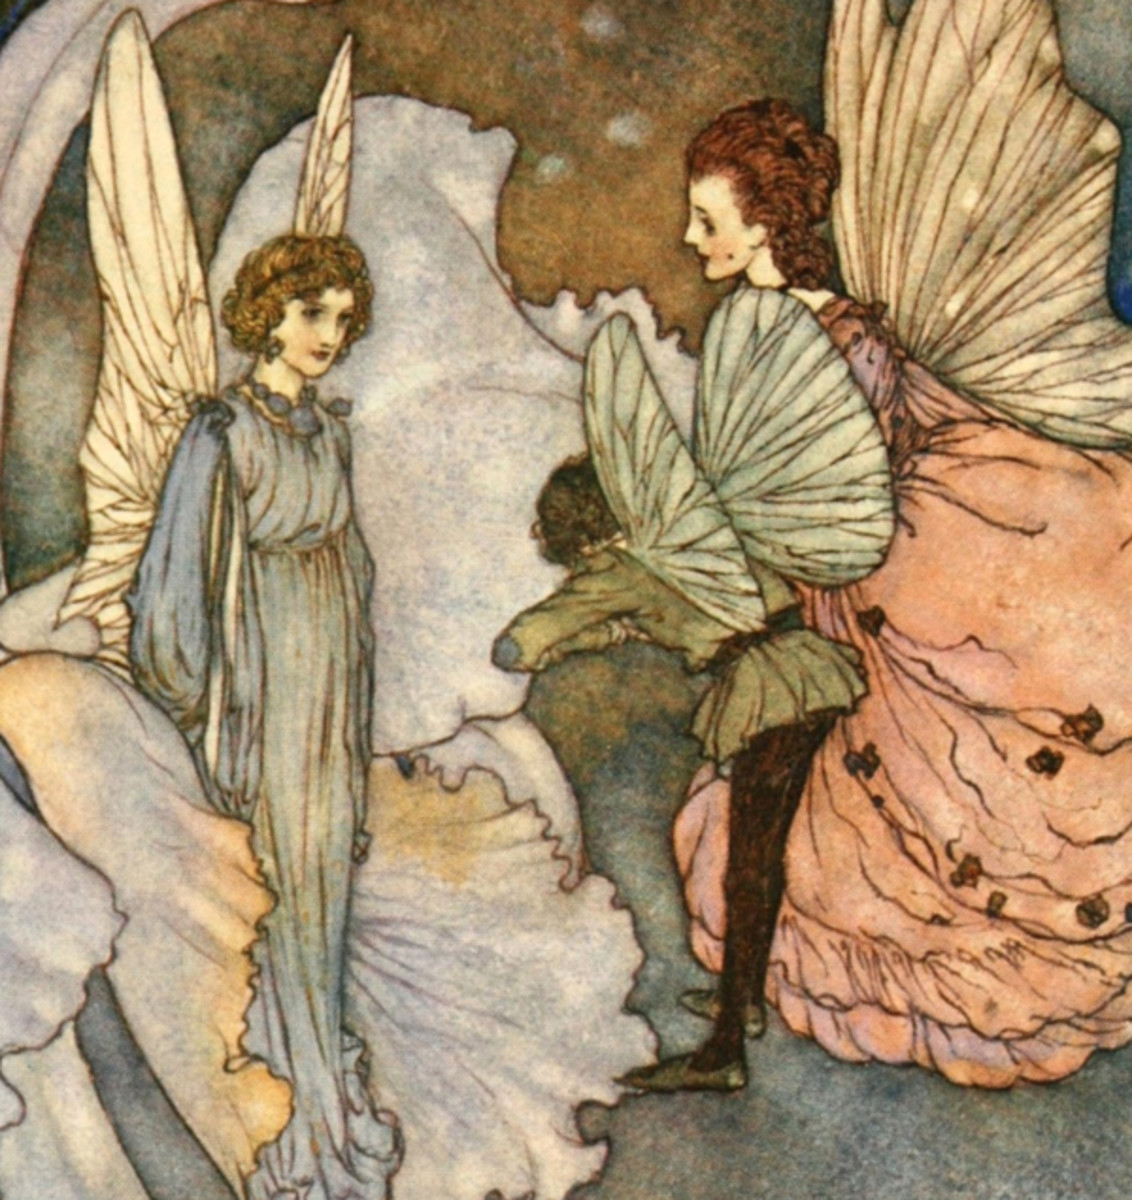 "Here we show a portion of 'Princess Orchid's Party' - it is from the suite by Edmund Dulac published in ""Fairies I Have Met"" (1907)."